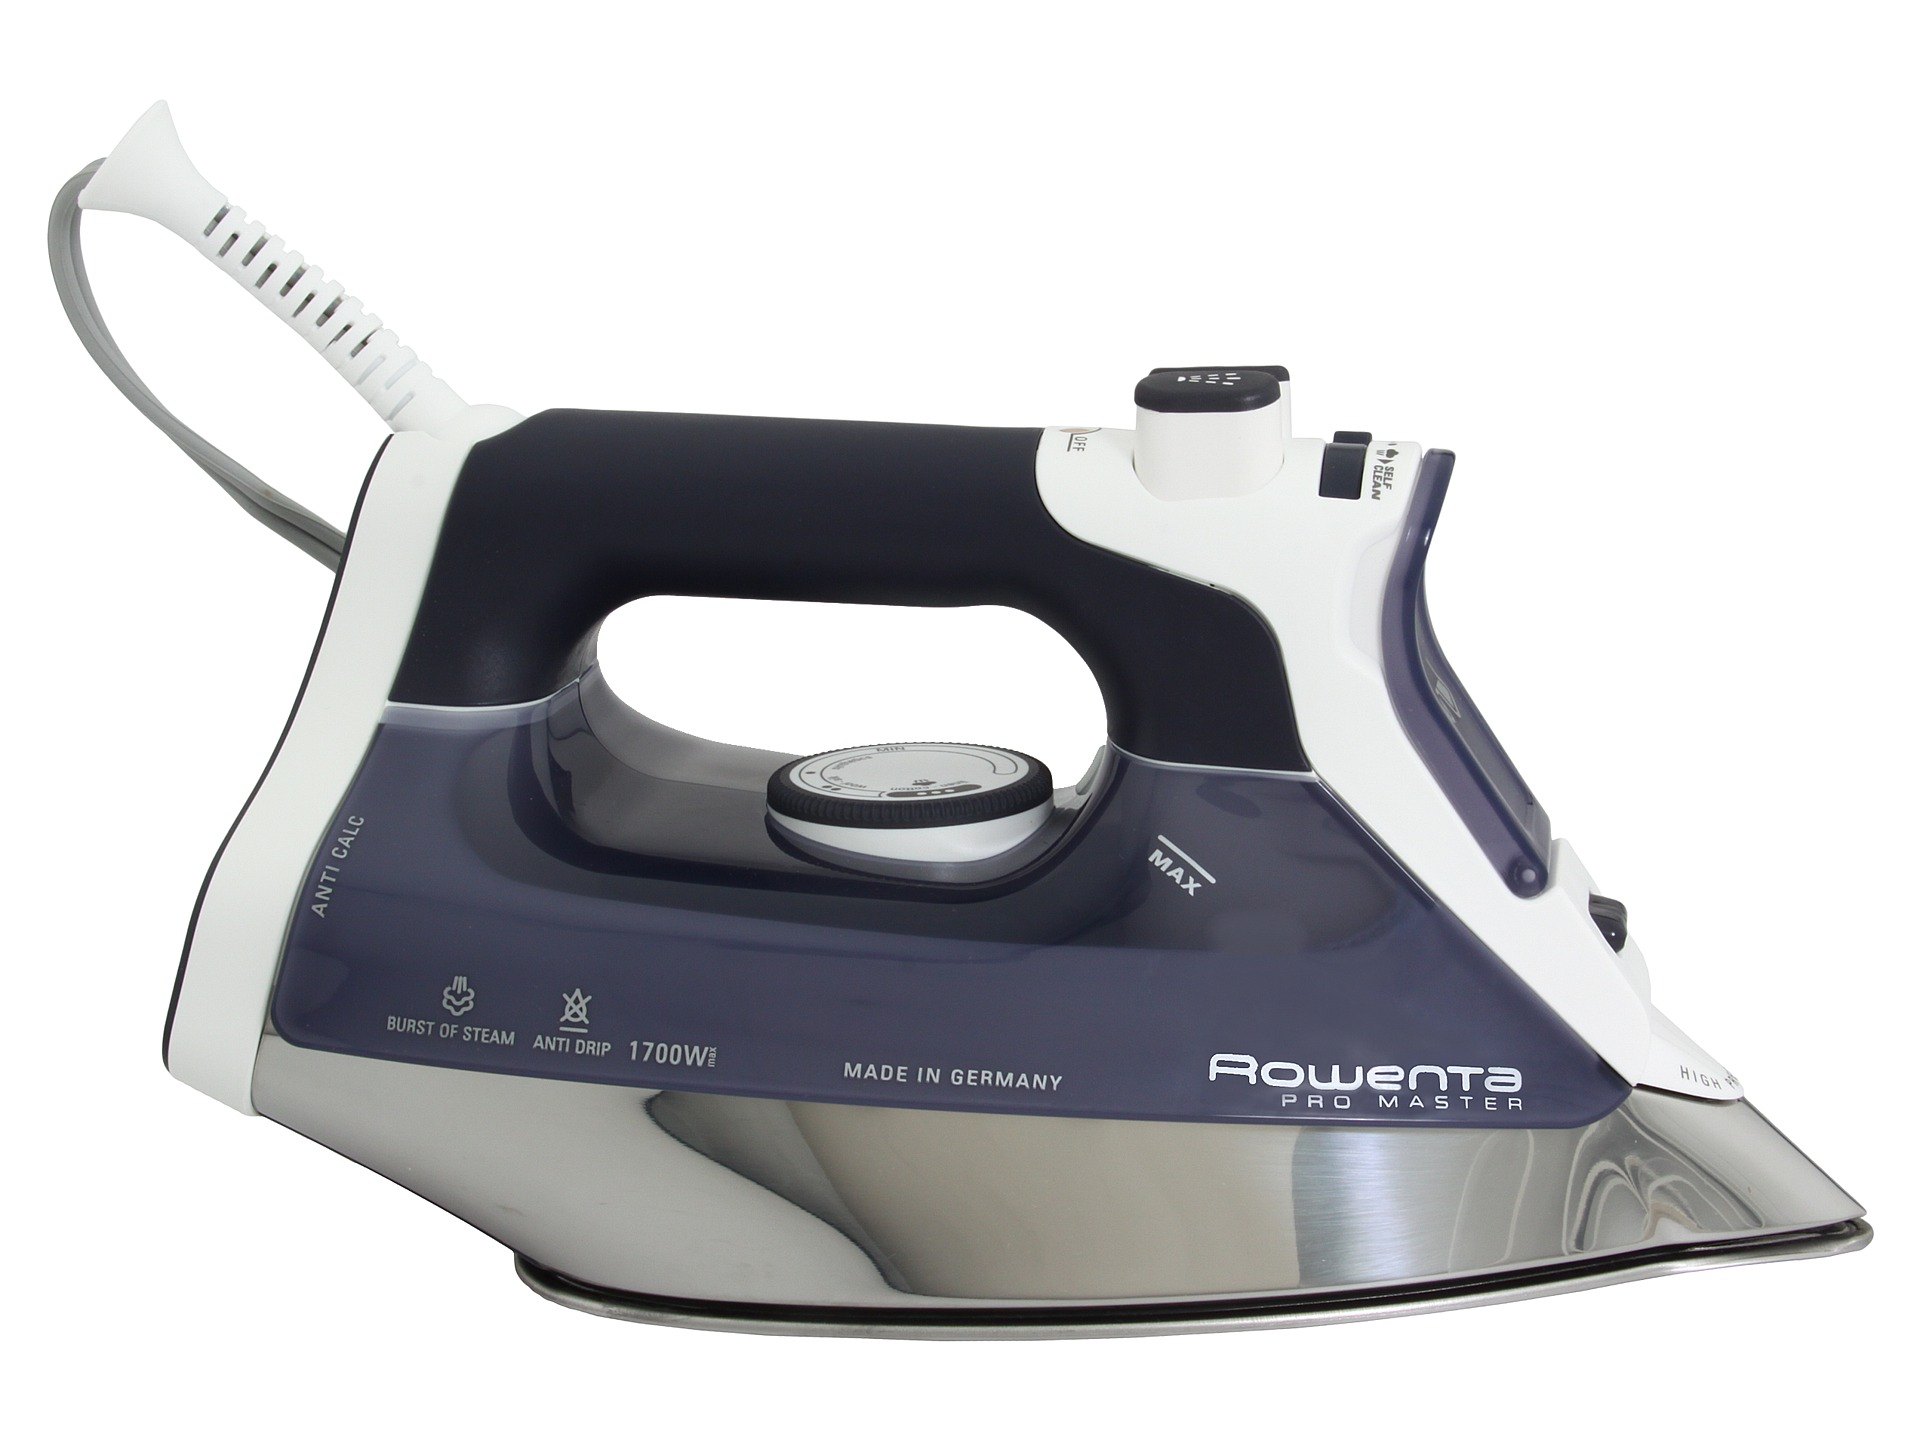 Rowenta Rg Pressure Iron And Steamer Image 10 From The ...